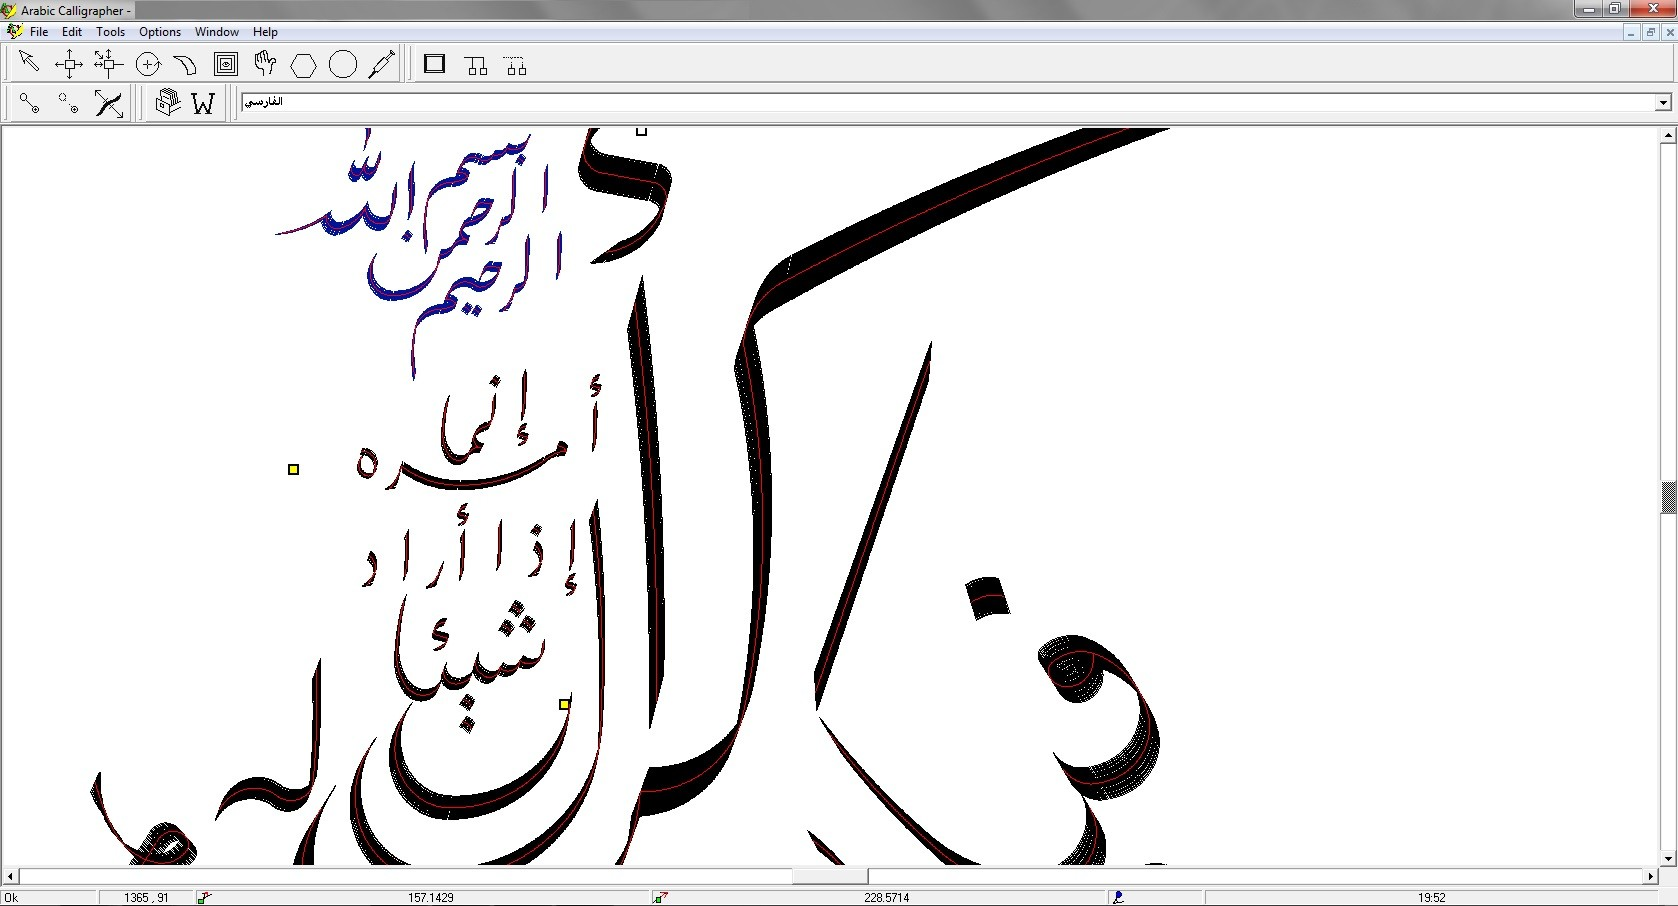 Arabic calligrapher download